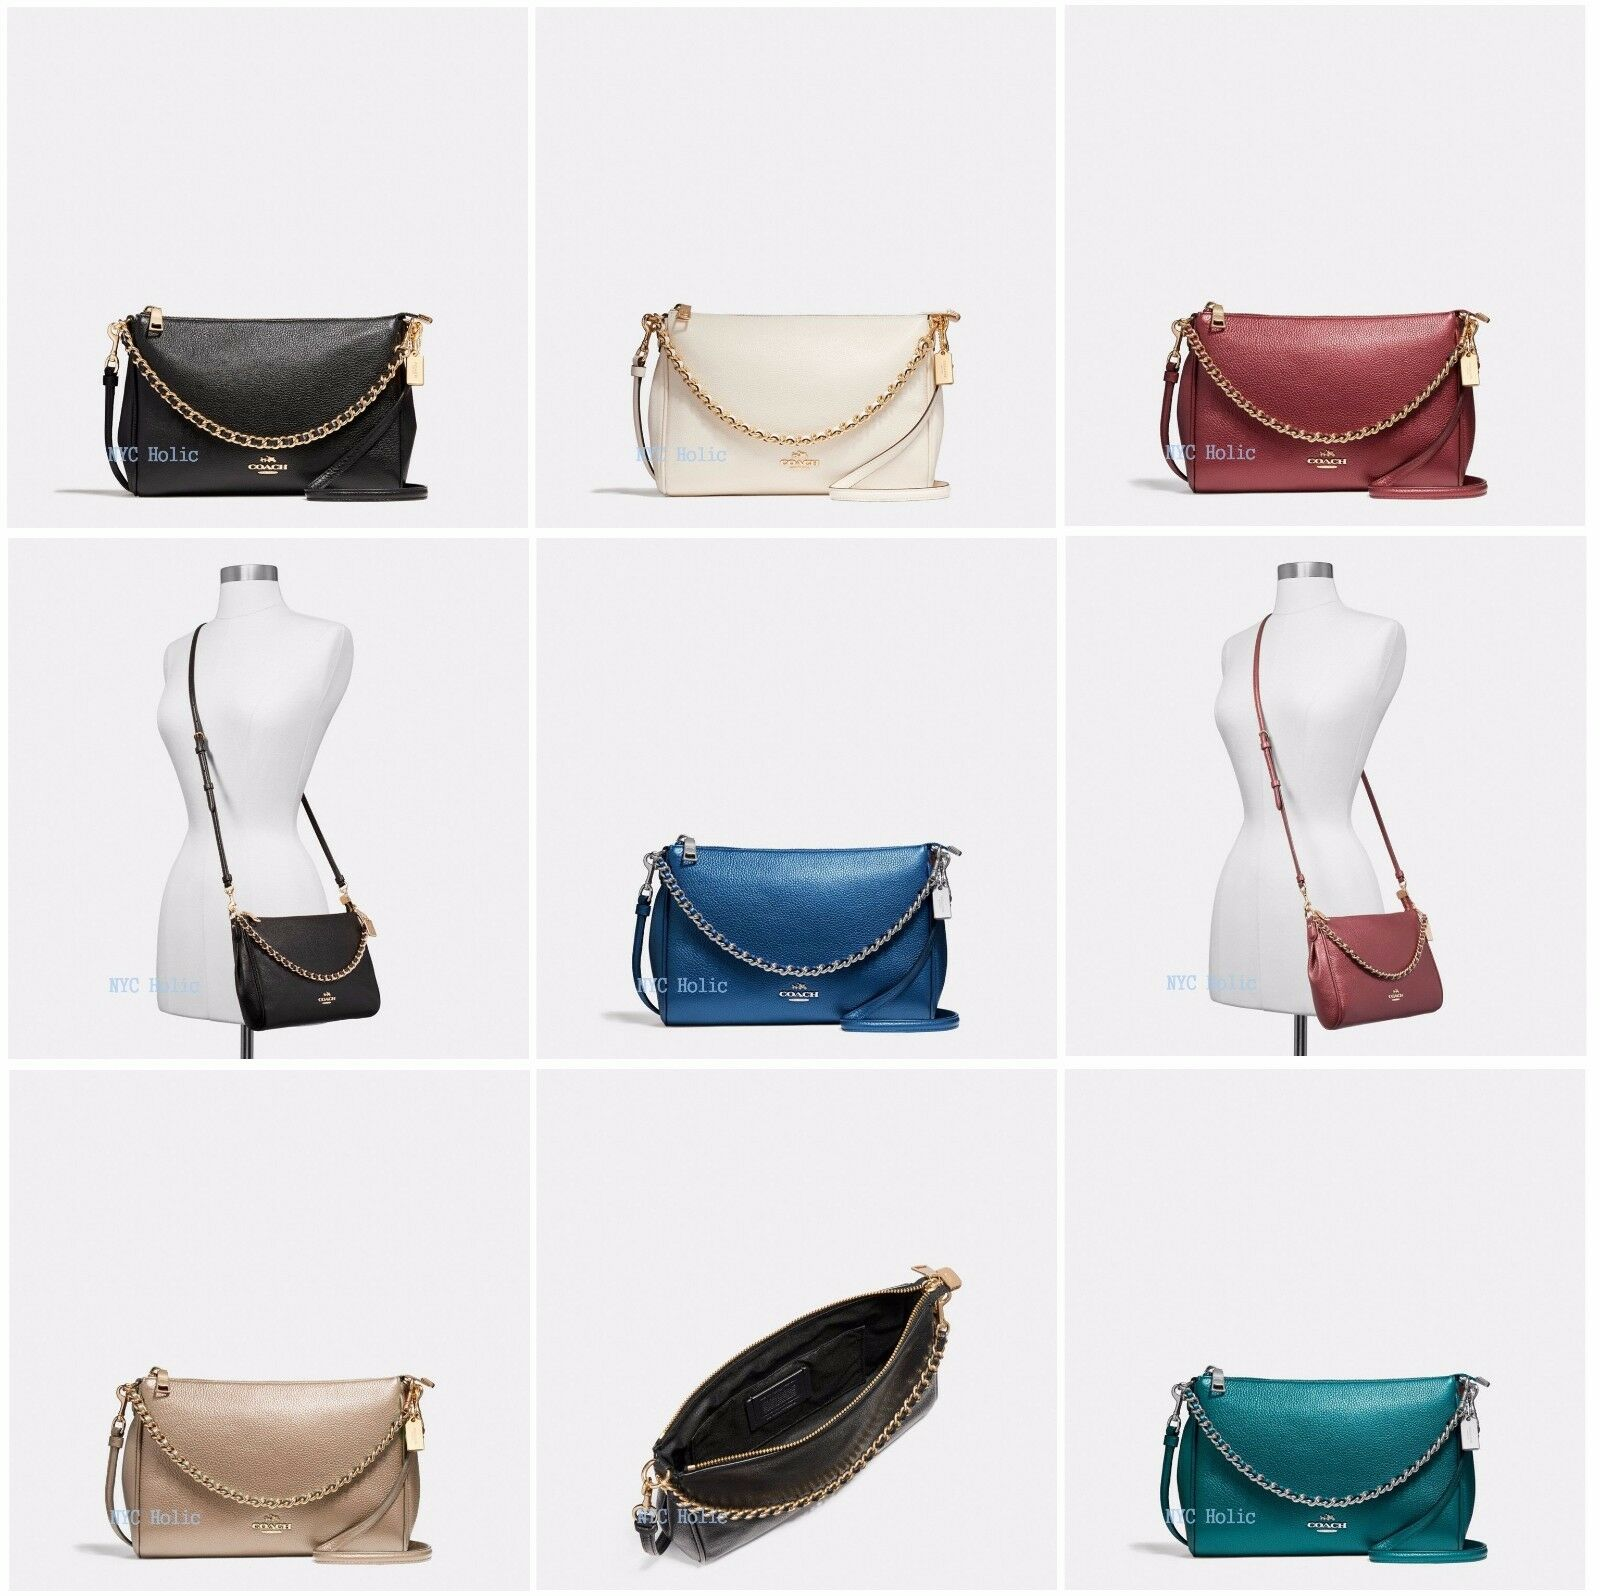 8a46a947a0855 New Coach Carrie Crossbody Bag In Pebble Leather F22207 F22212